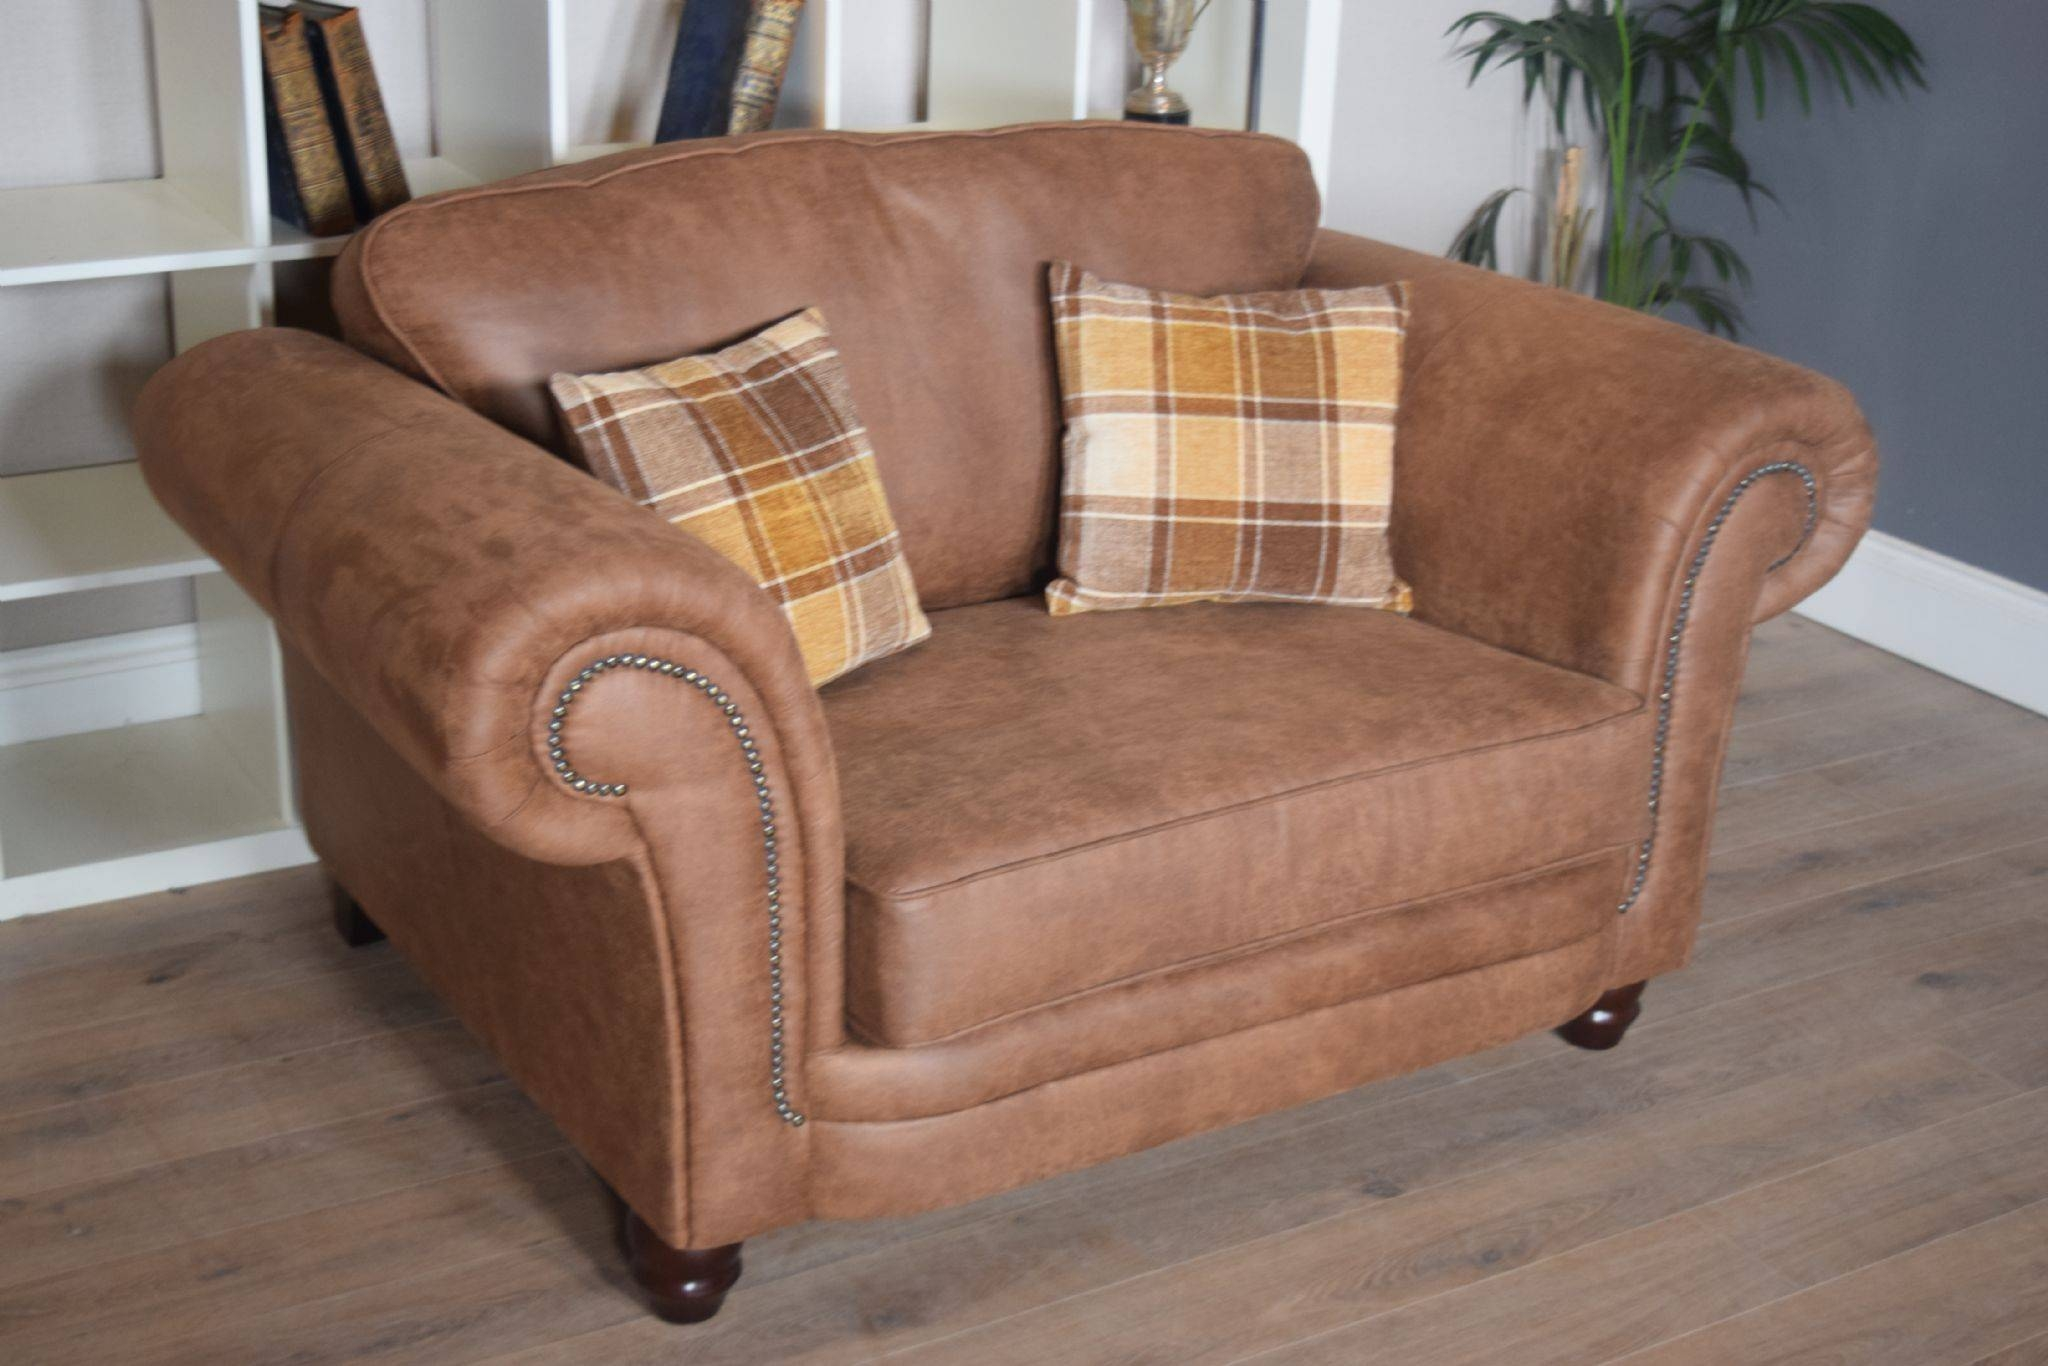 Set Abbey Downton 3 Seater Sofa & Large Cuddle Chair – Tan Fitted Back Regarding 3 Seater Sofa And Cuddle Chairs (View 21 of 30)